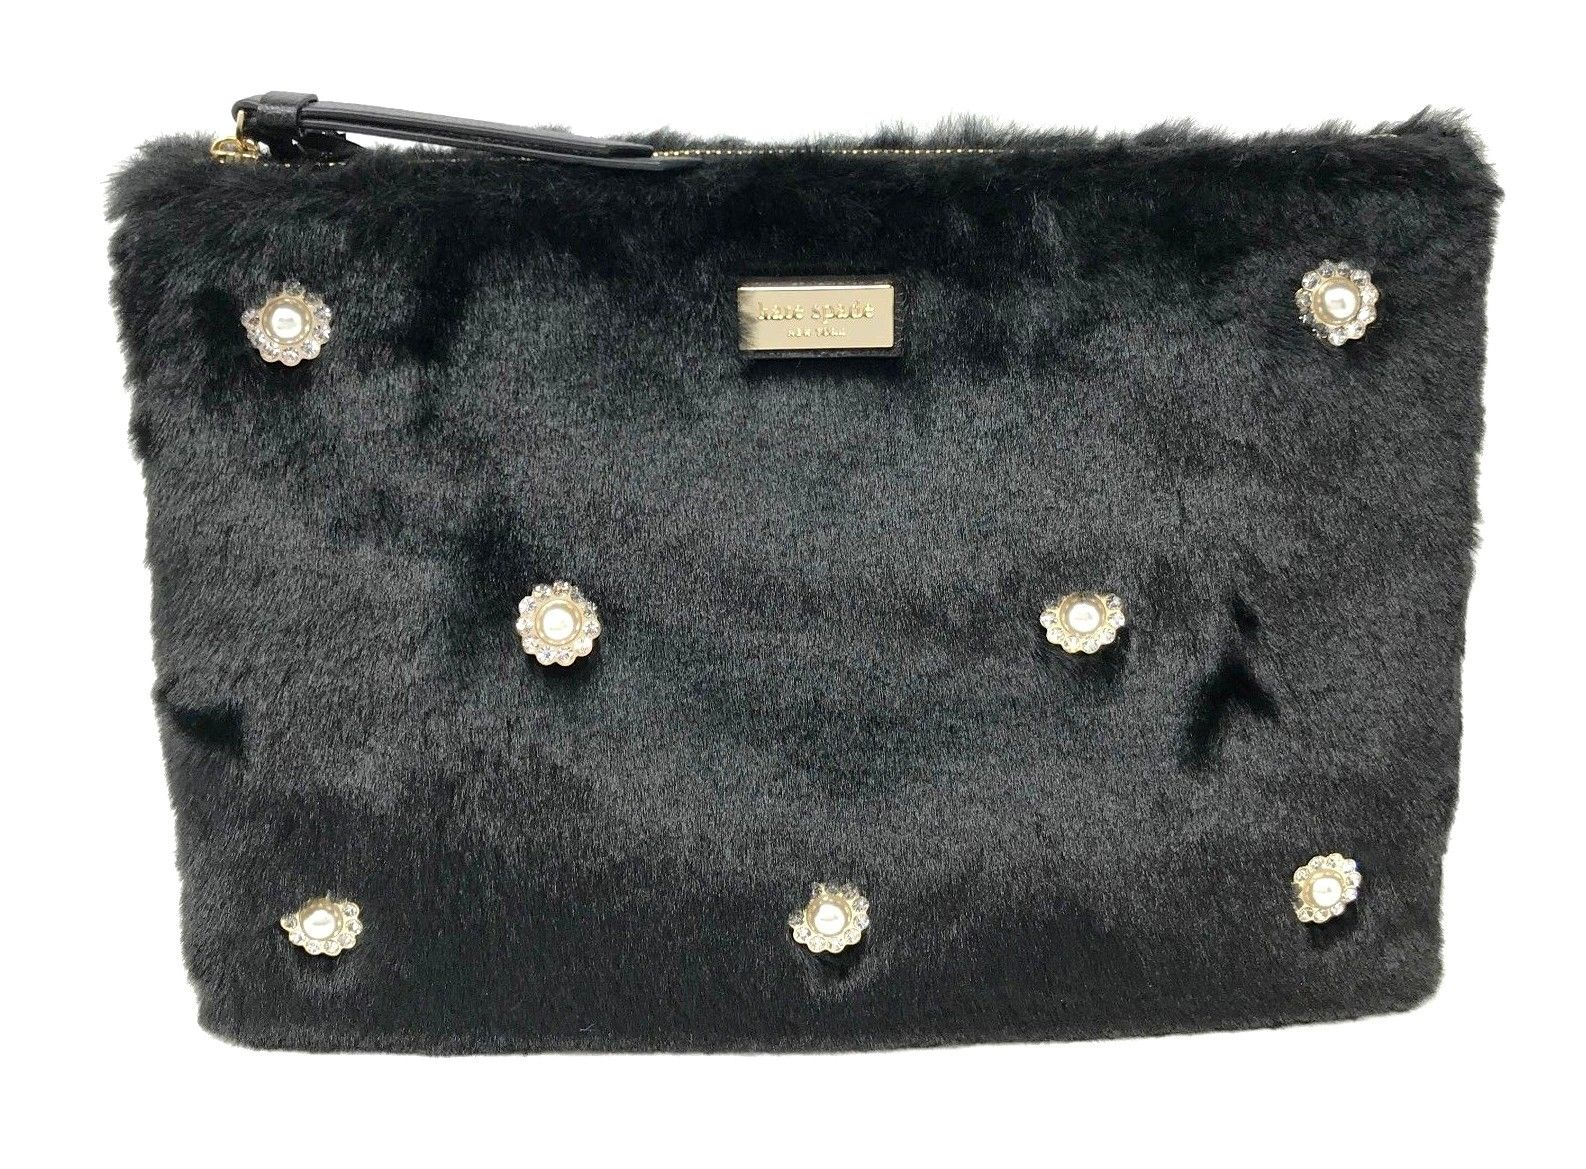 Kate Spade Cedar Road Gia Clutch Cosmetic Bag WLRU5191 $199